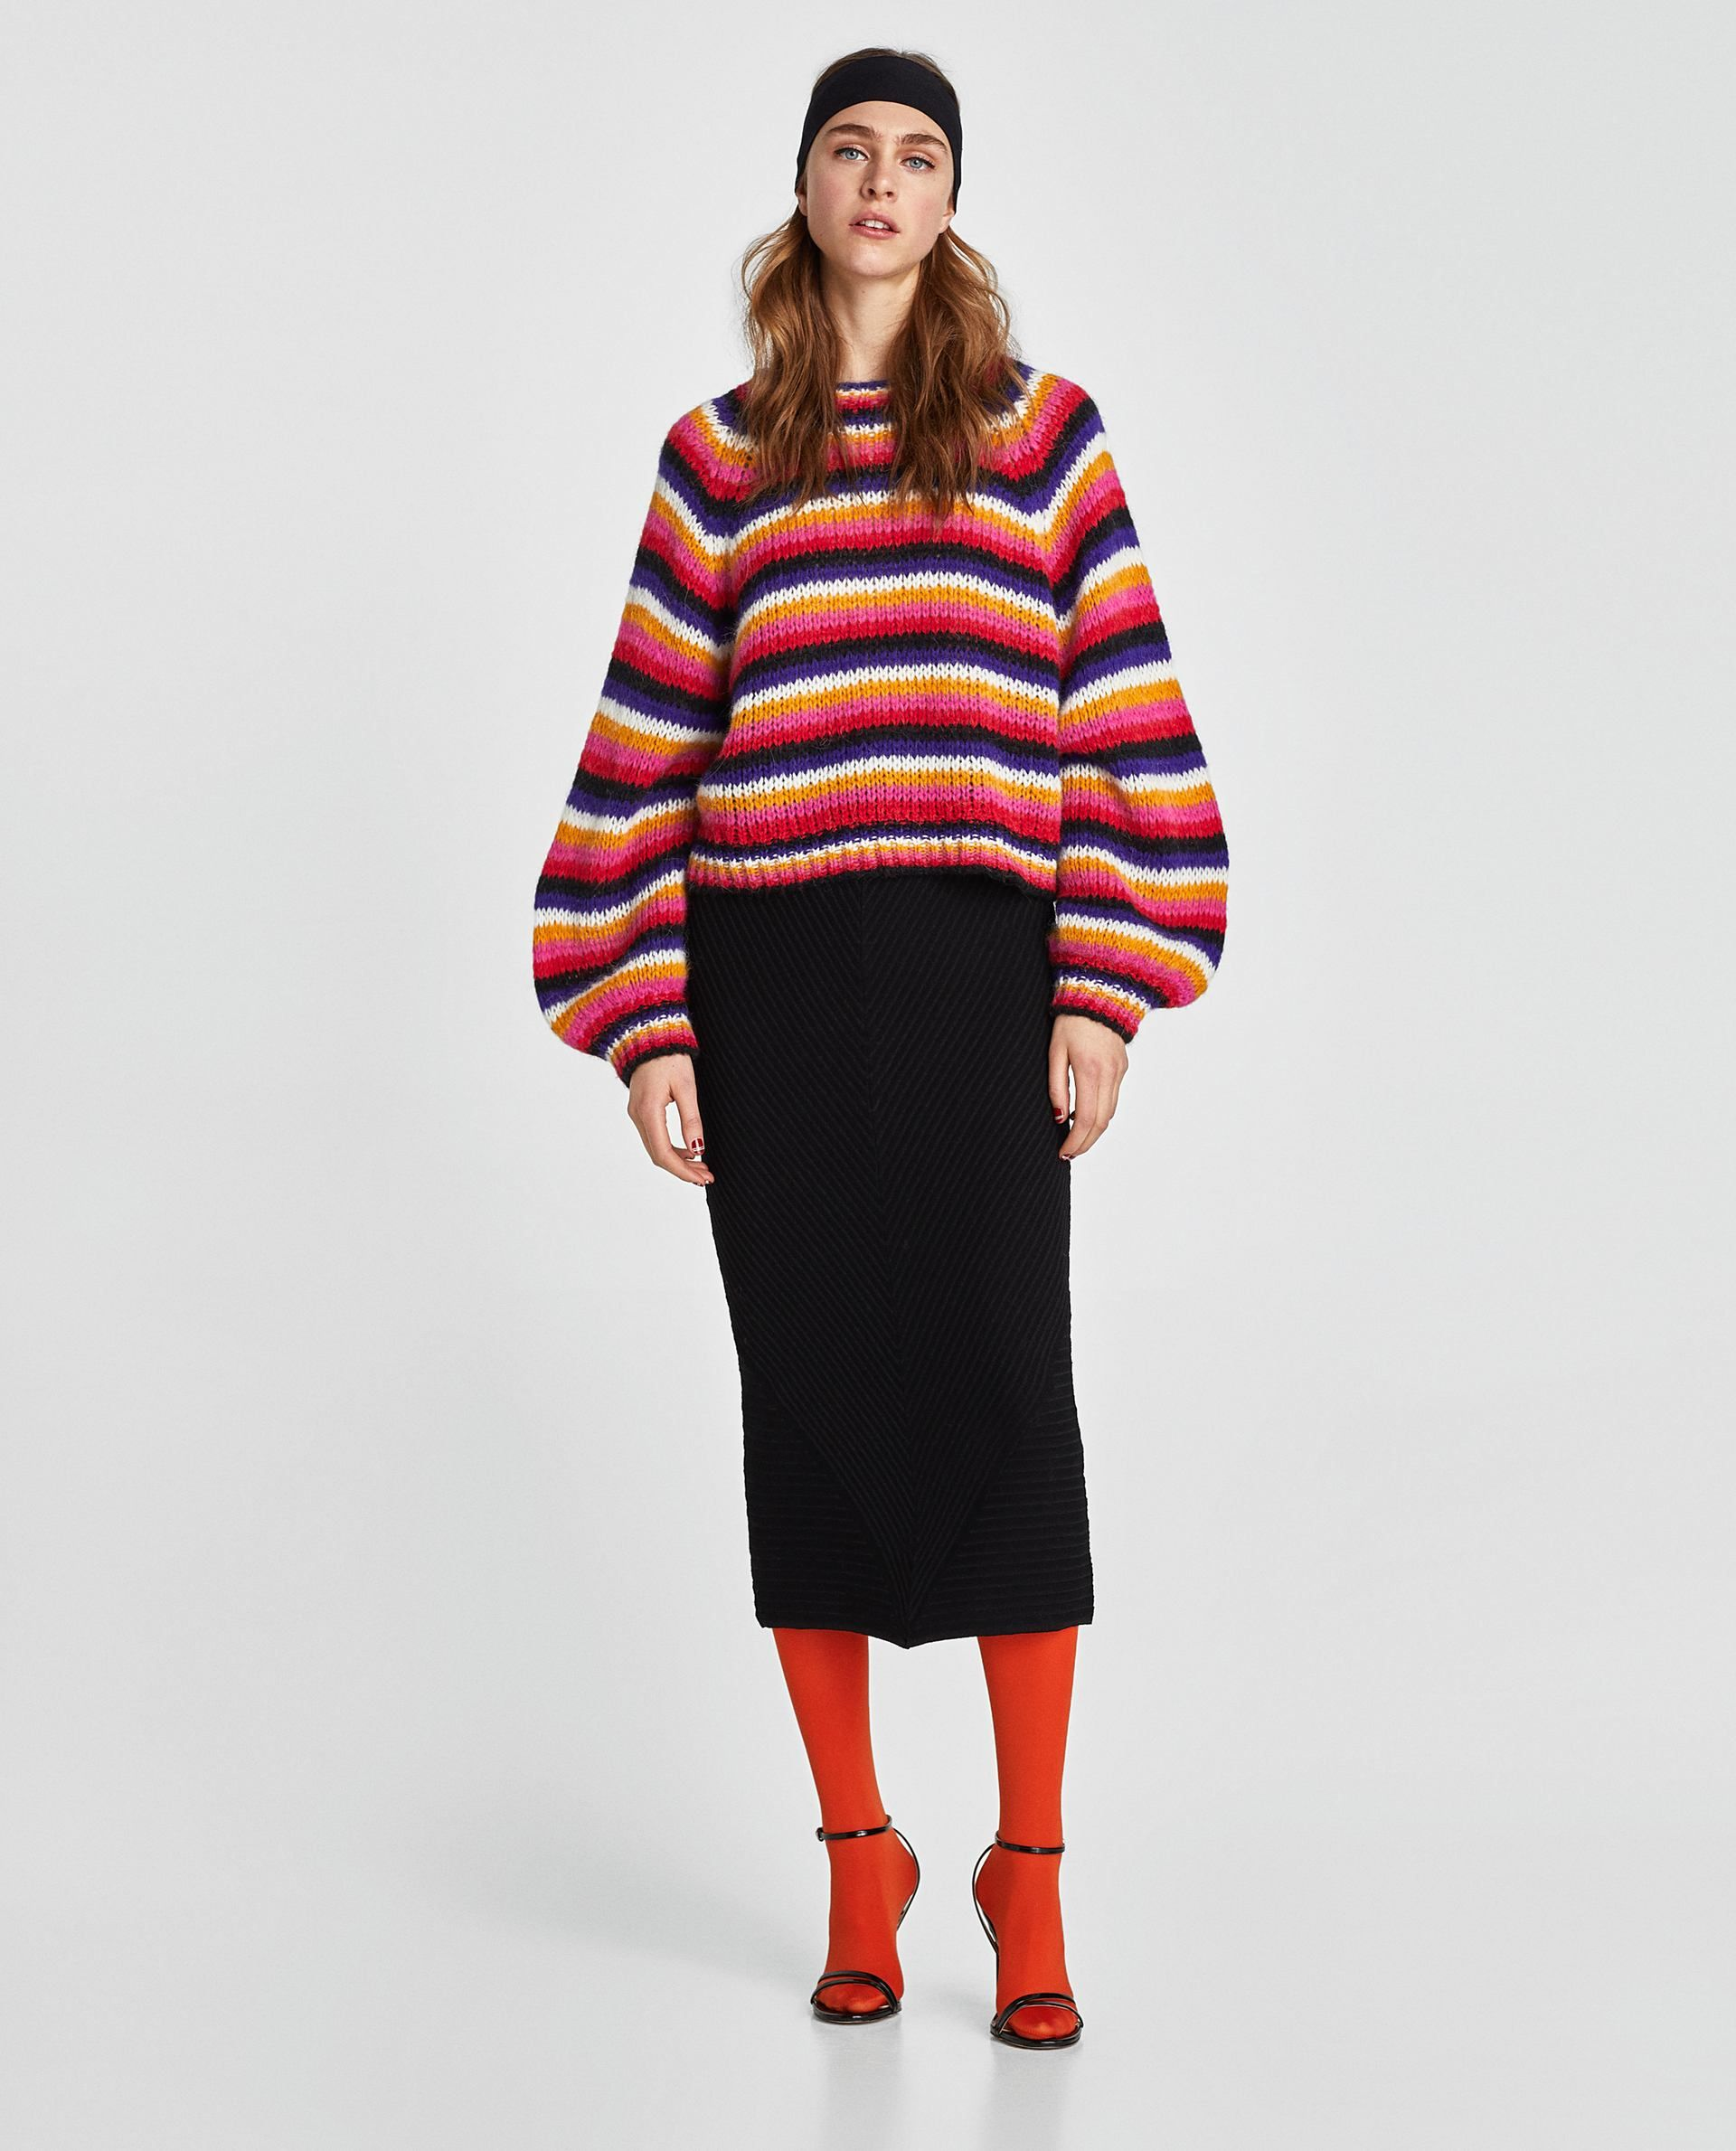 c0acac58 ZARA - WOMAN - MULTICOLORED STRIPED SWEATER | Clothes to buy ...